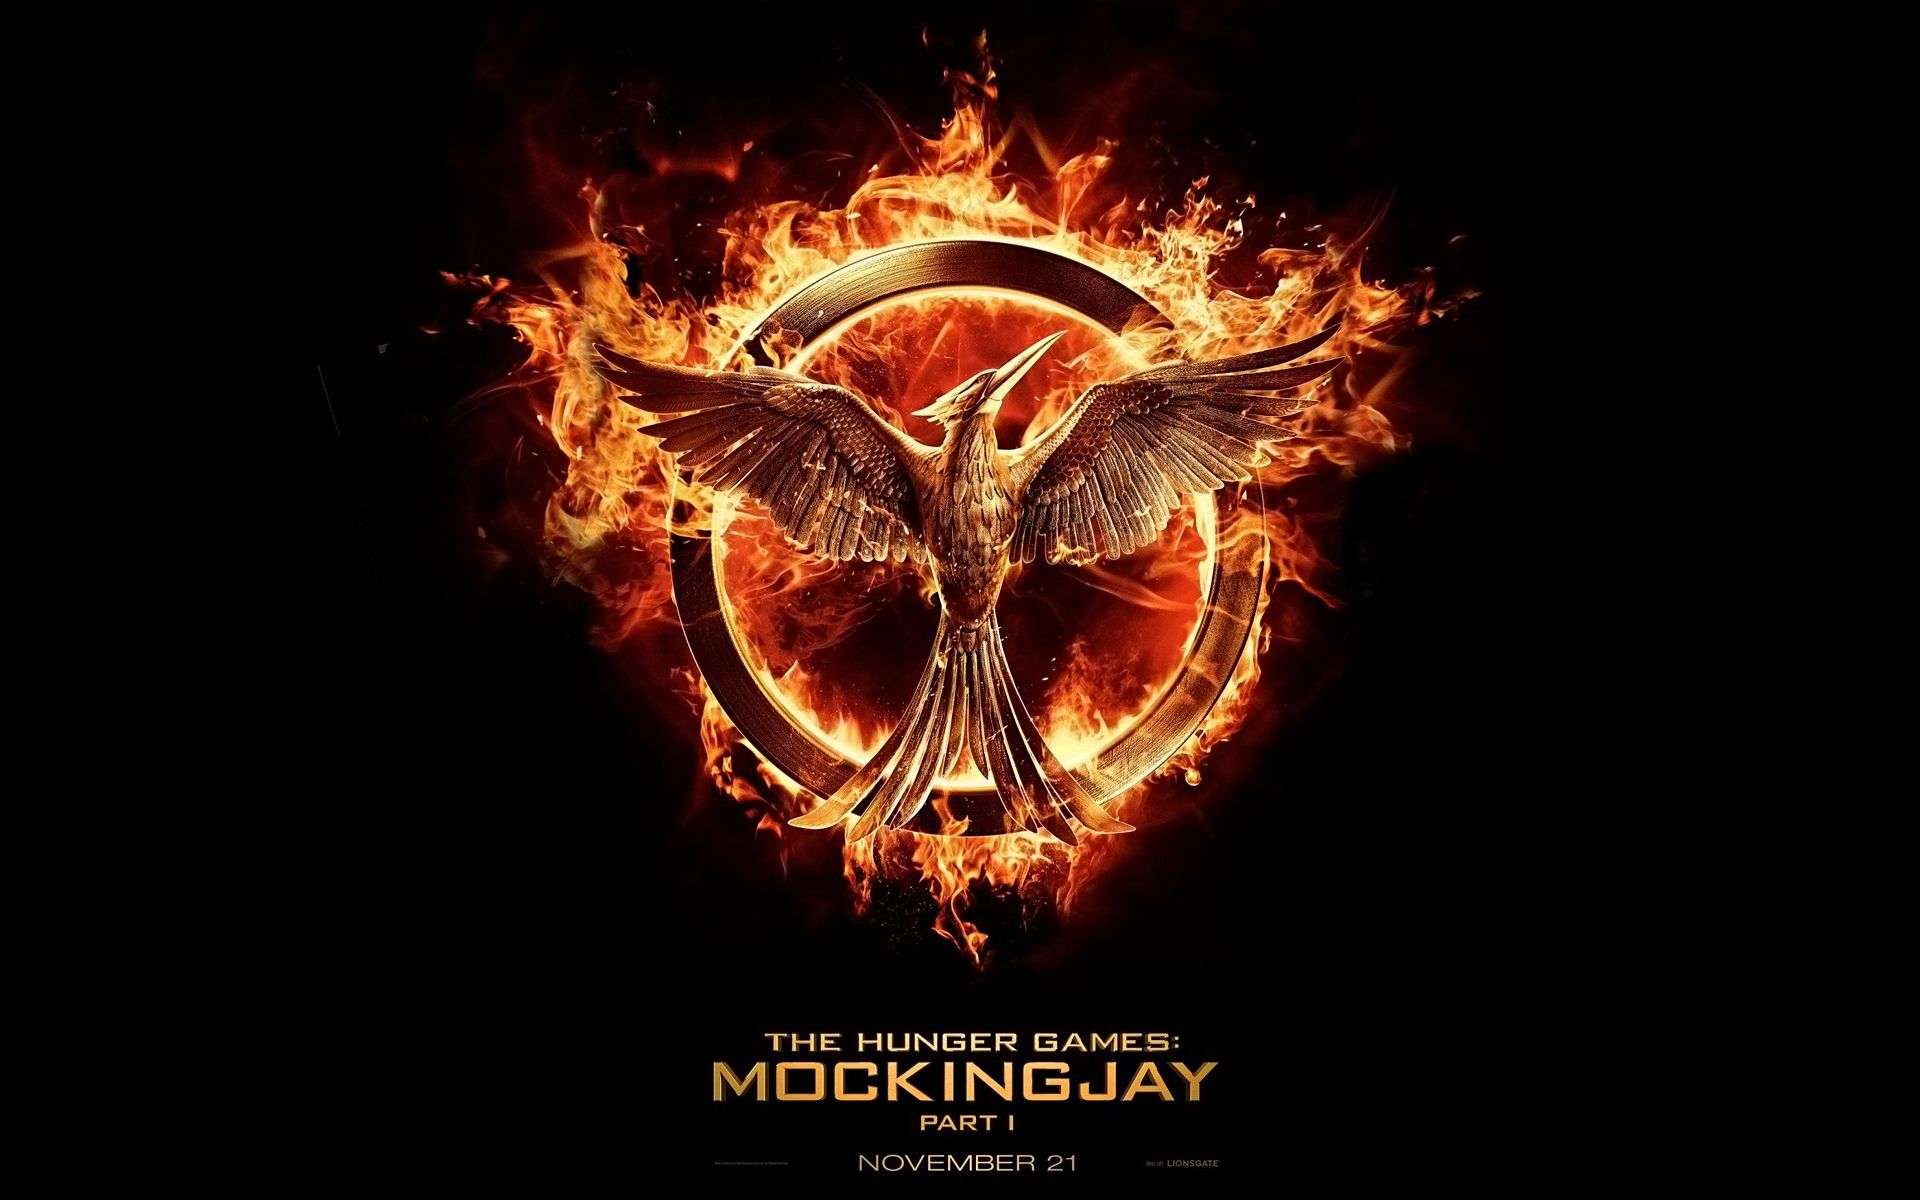 Movie the hunger games mockingjay part 1 the hunger games movie the hunger games mockingjay part 1 the hunger games wallpaper voltagebd Image collections